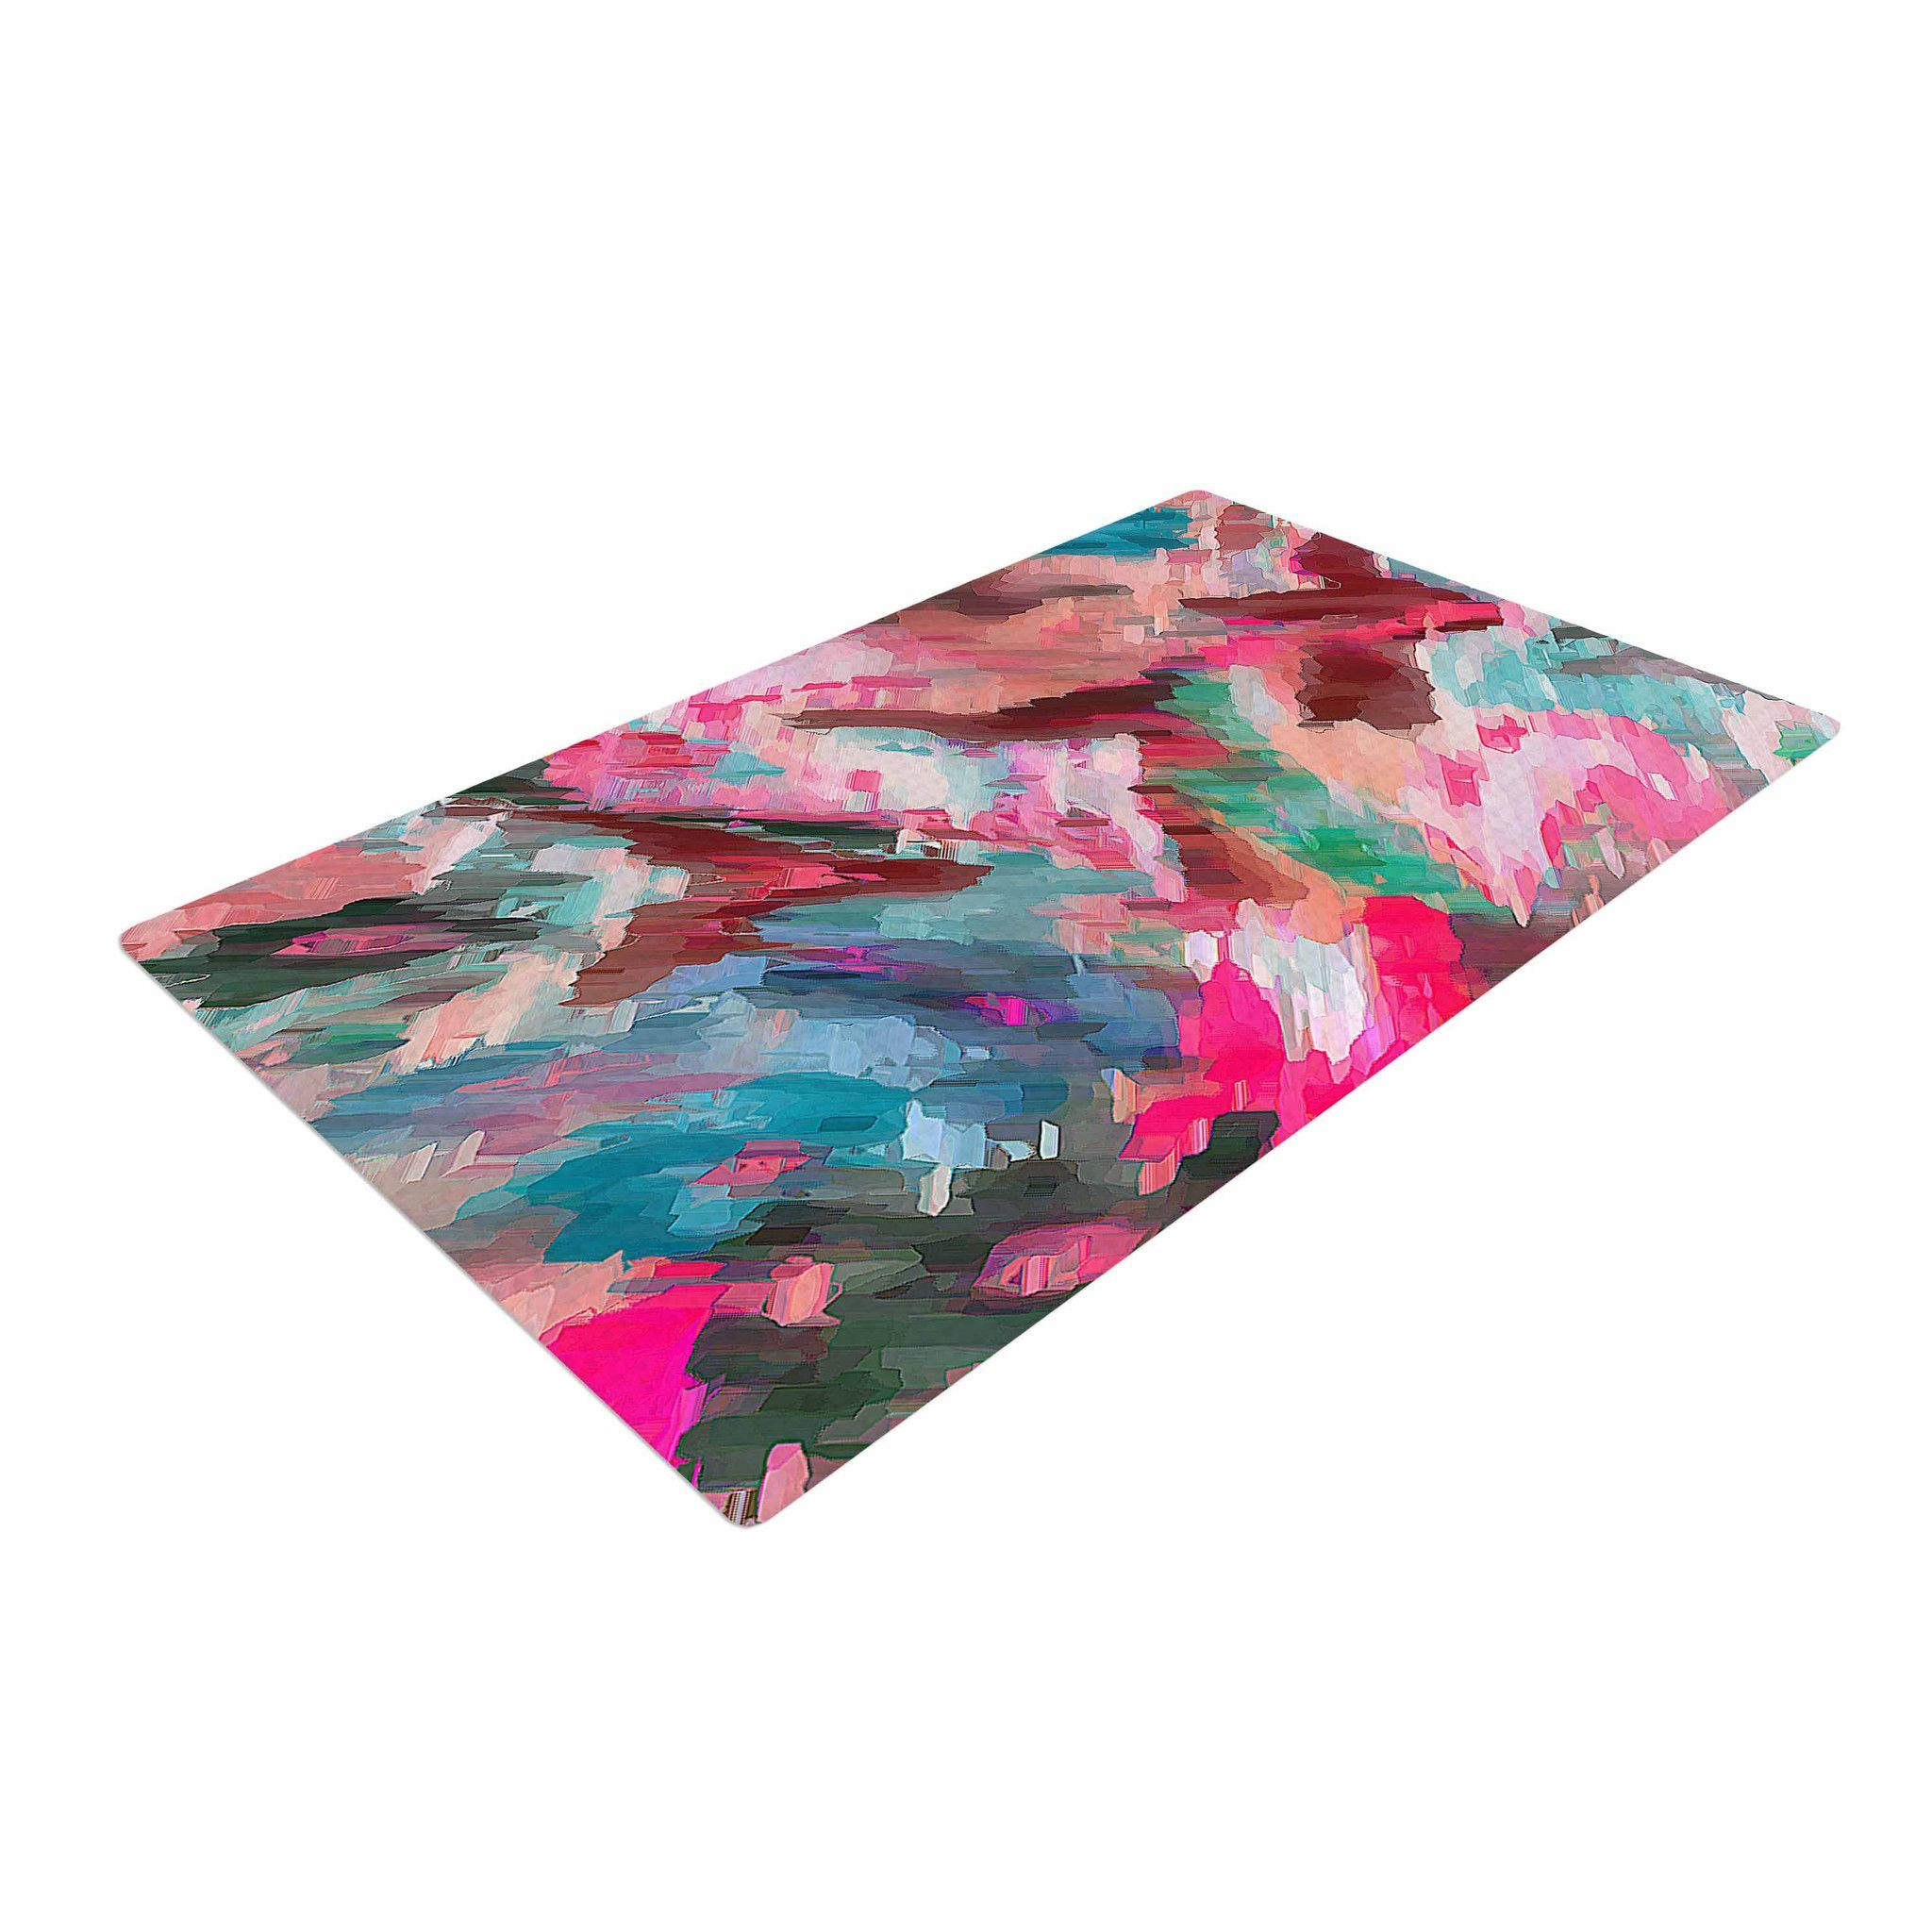 "Alison Coxon ""Giverny Pink"" Teal Peach Woven Area Rug"